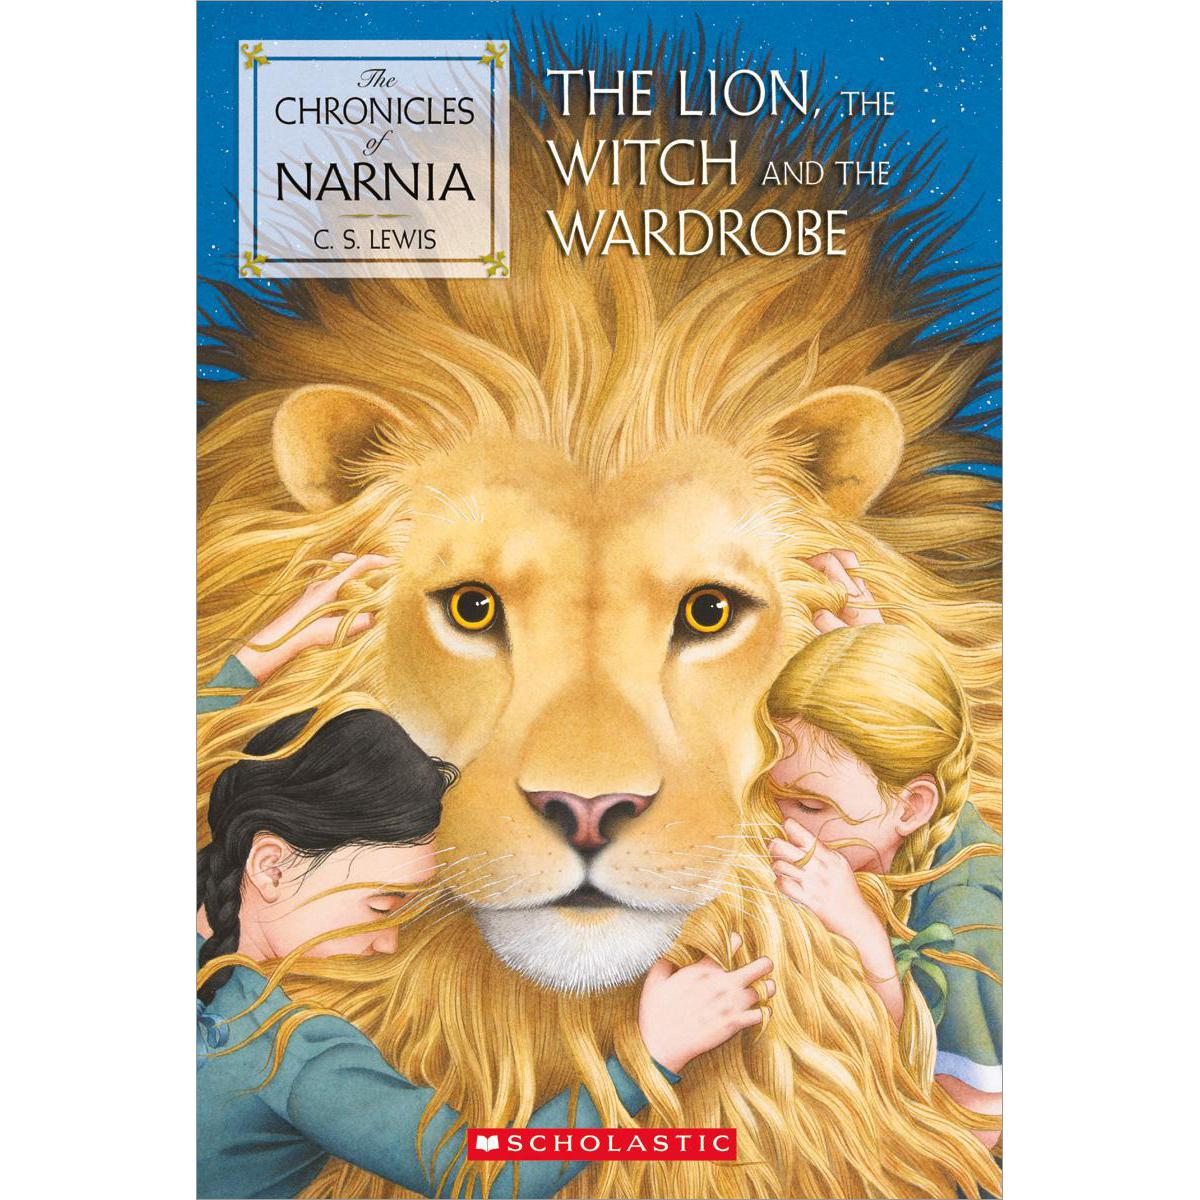 The Chronicles of Narnia: The Lion, the Witch and the Wardrobe 10-Pack